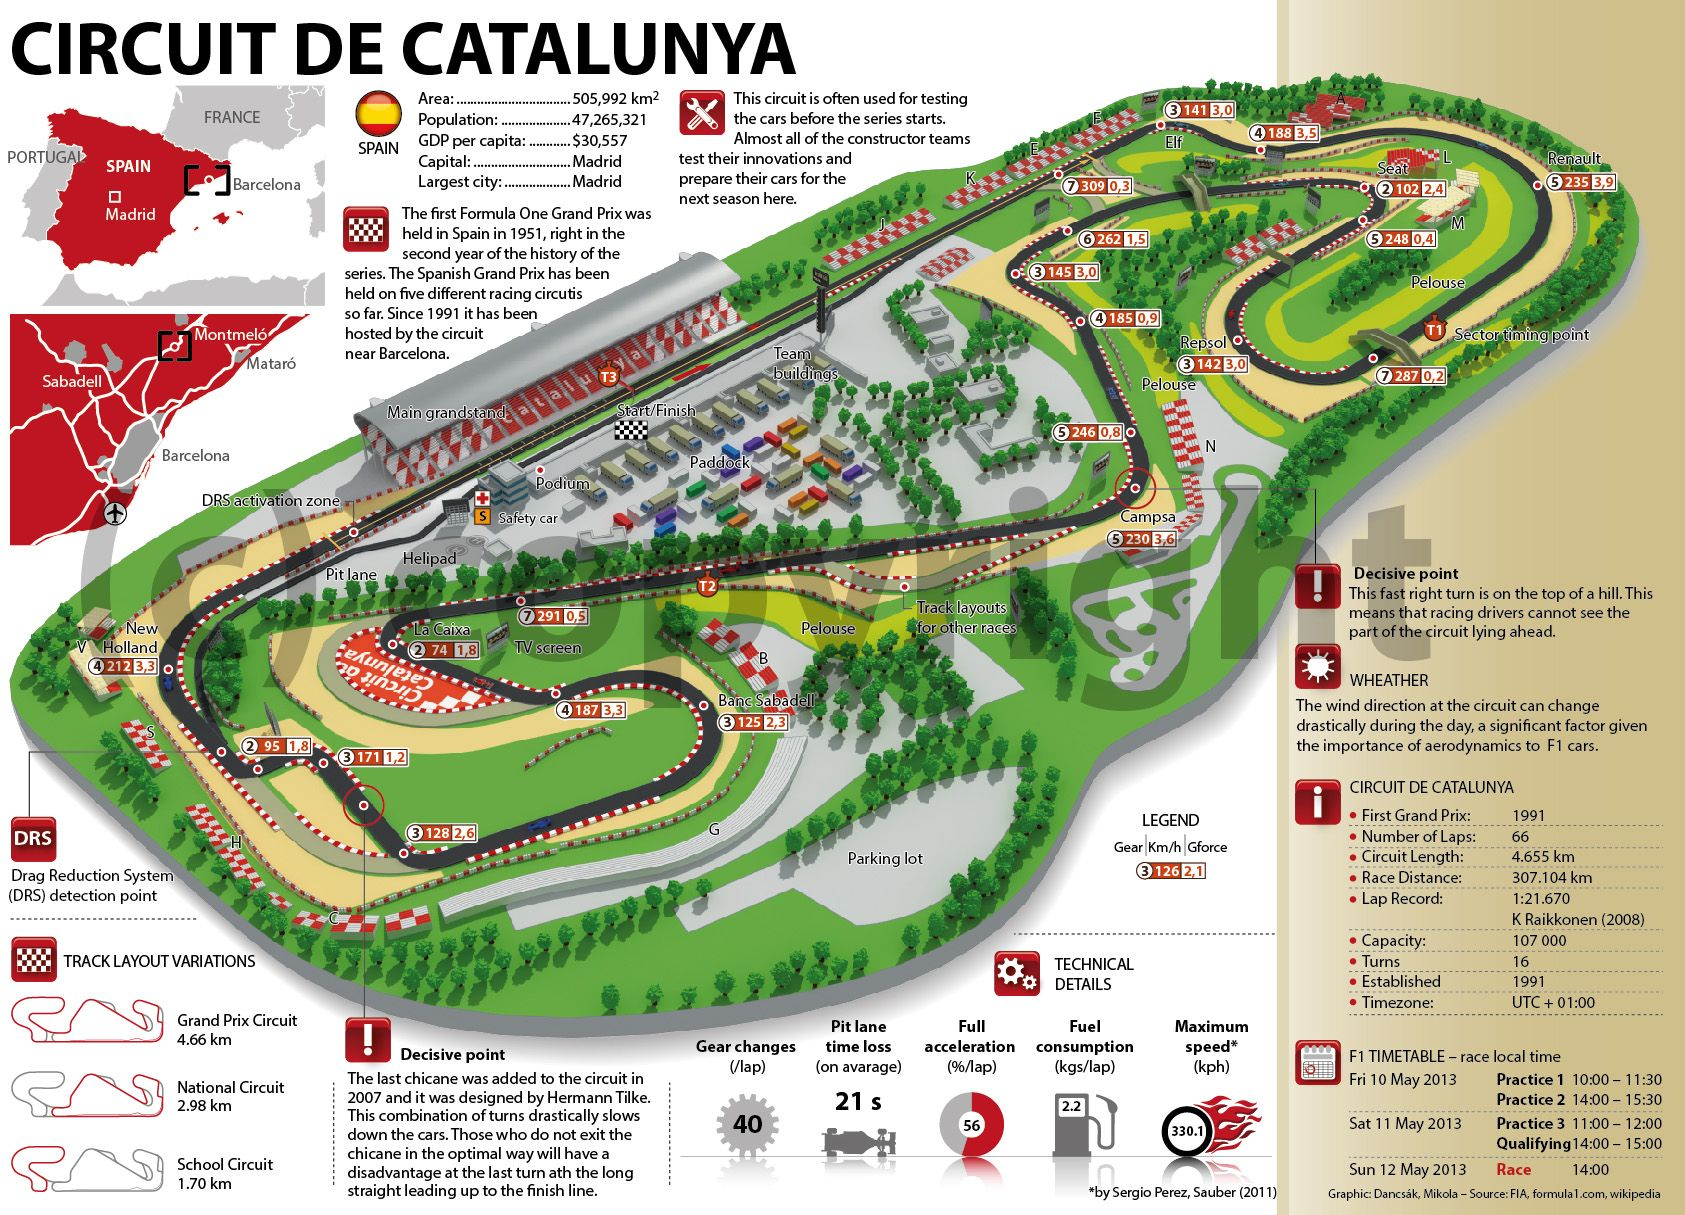 f1 circuit de catalunya spain f1 acceleration pinterest grand prix. Black Bedroom Furniture Sets. Home Design Ideas